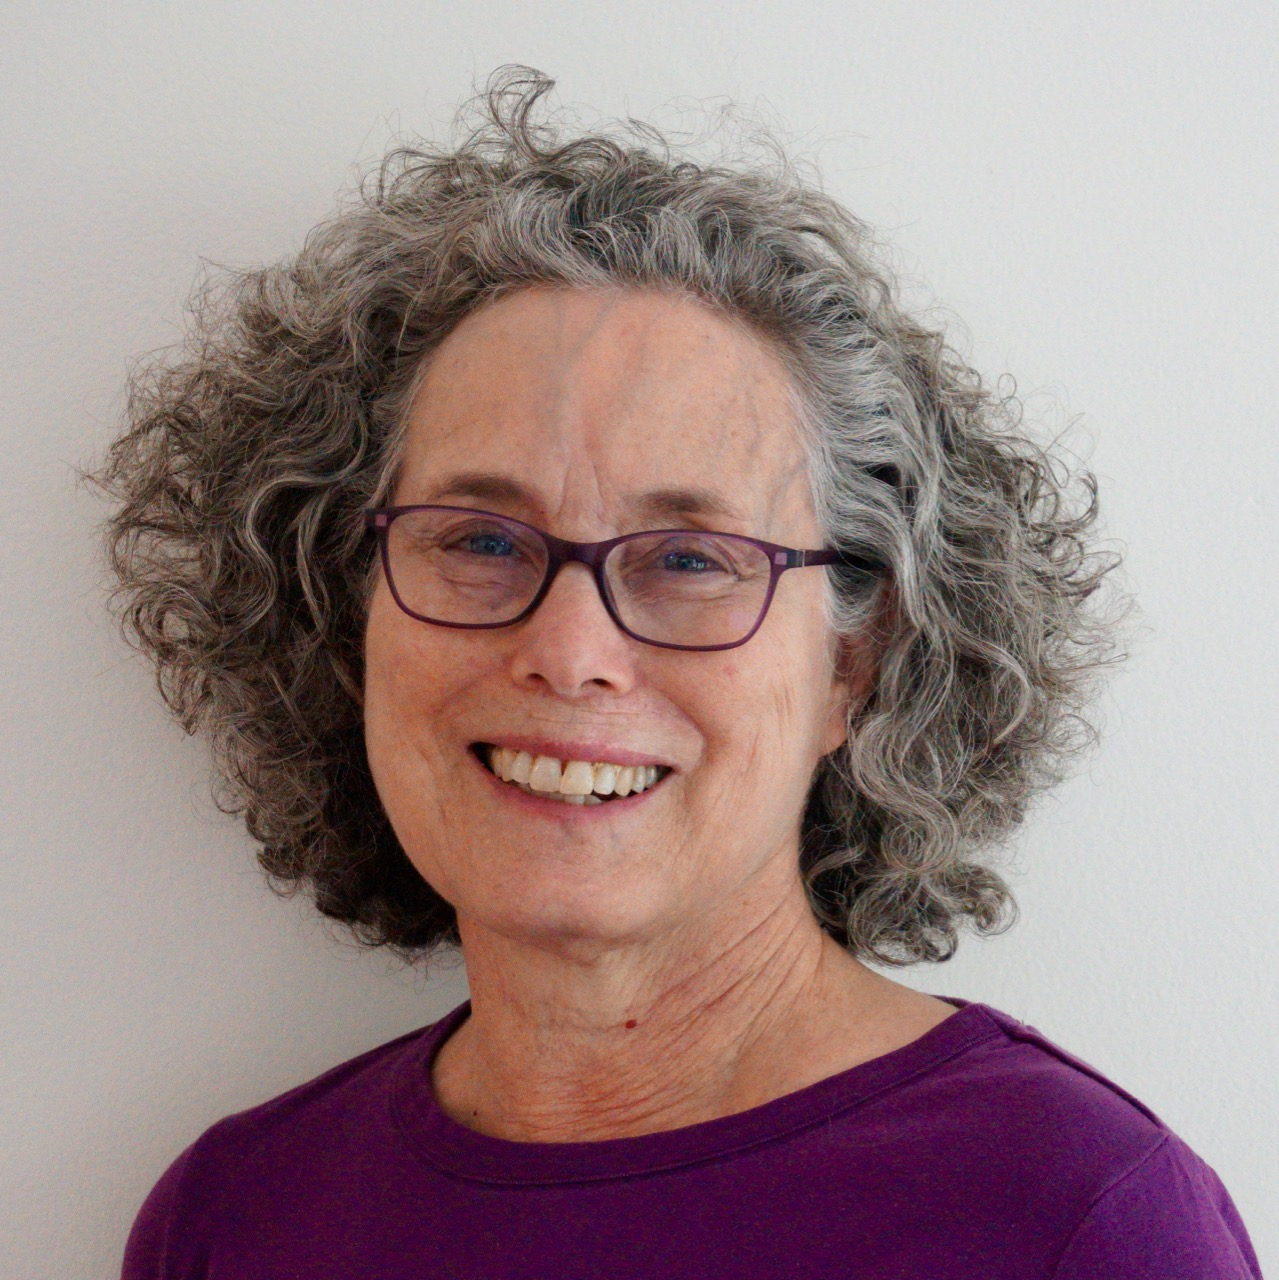 claire weiner teaches mindfulness in ann arbor, michigan